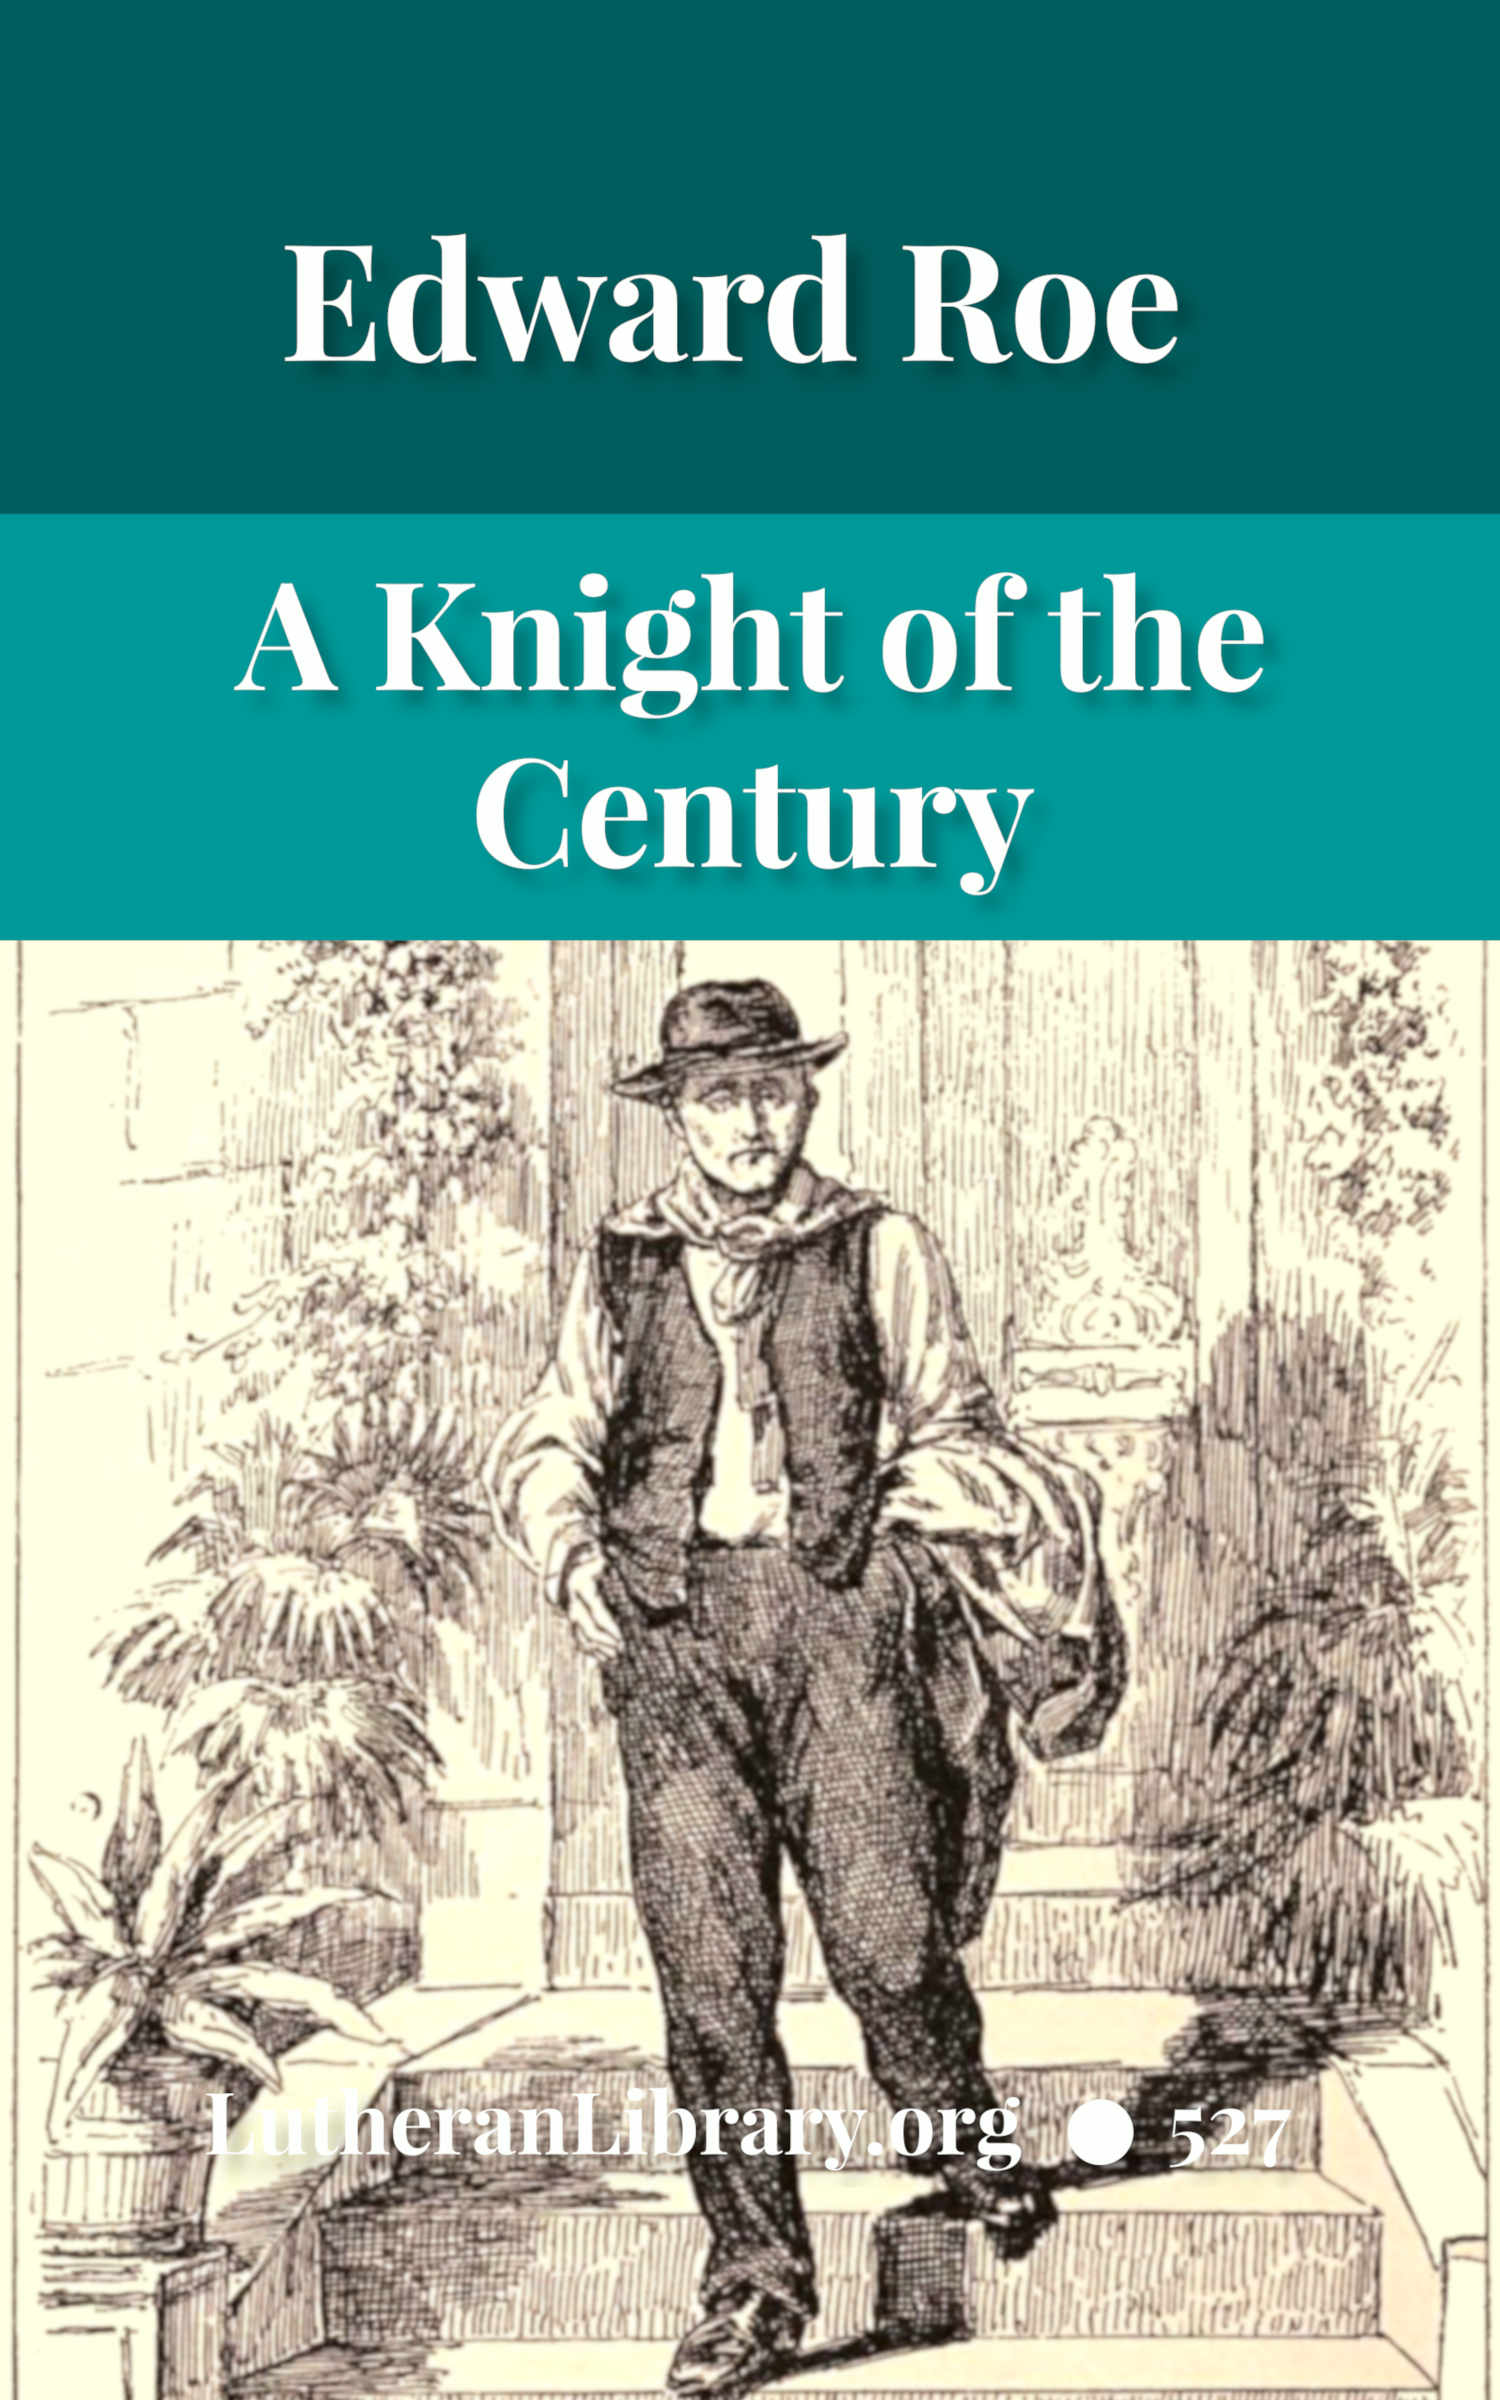 A Knight of the Nineteenth Century by AUTHOR